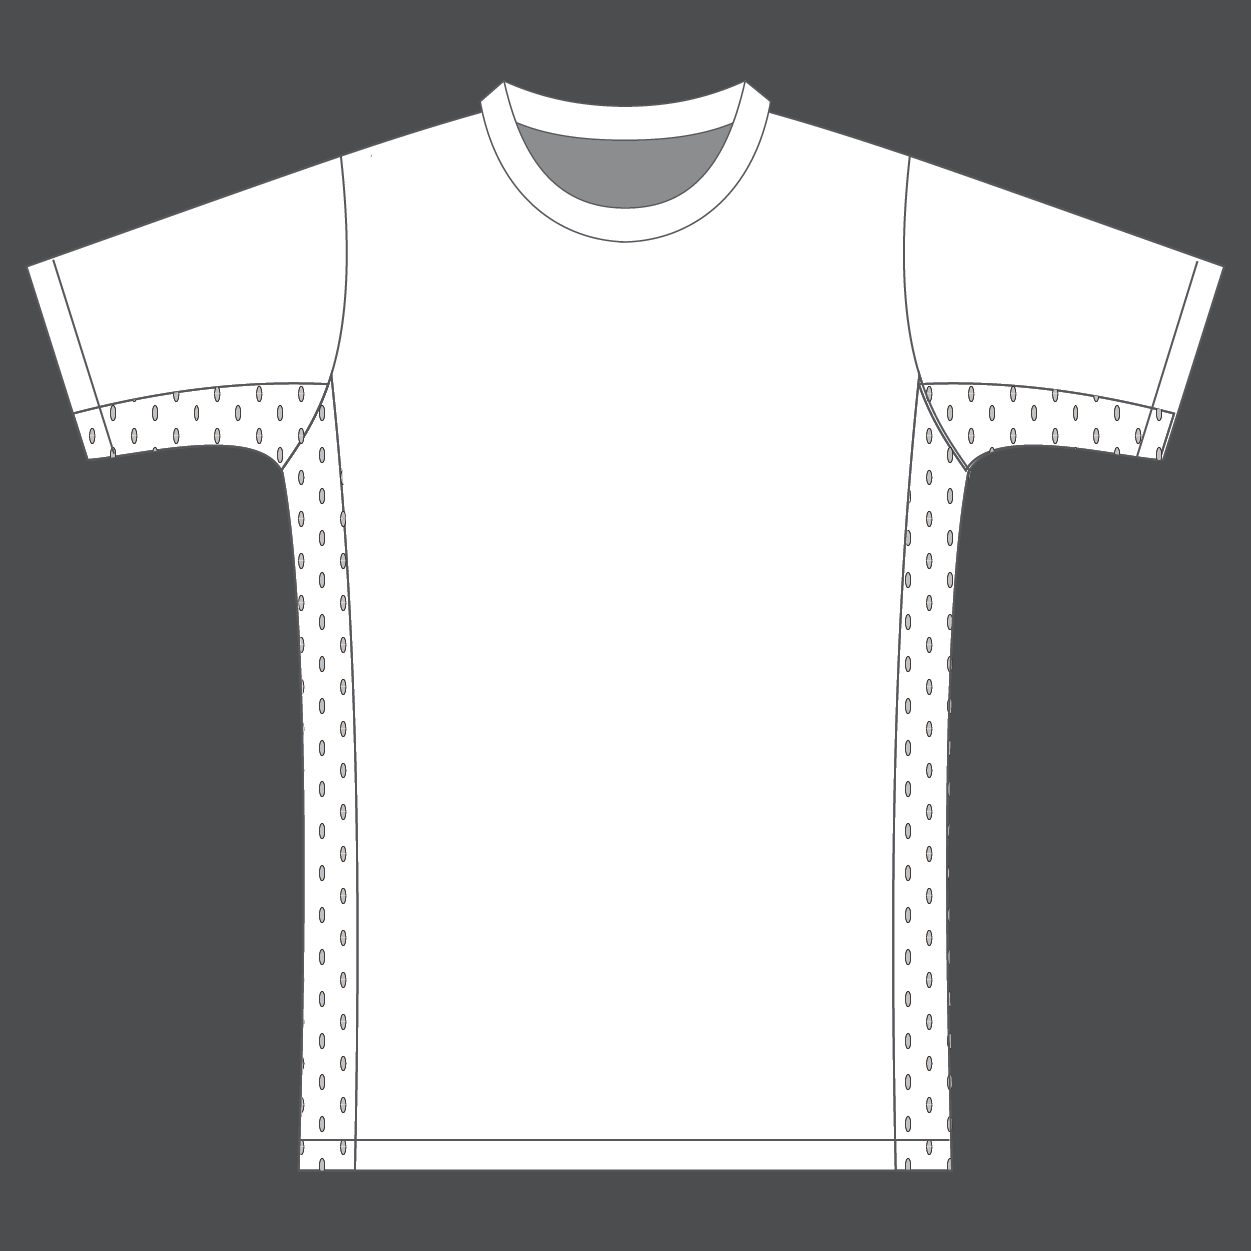 Men's Volleyball Short Sleeve Jersey - Retail Price:$49.99Team Price 12-23:$39.99Team Price 24+:$34.99Team Price 50+:Contact your Emblem Rep for a custom quoteFabric:Lightweight interlock front and back with 4-way stretch spandex mesh side insertsSizes:YS, YM, YL, XS, S, M, L, XL, XXL, XXXLOptions:N/A